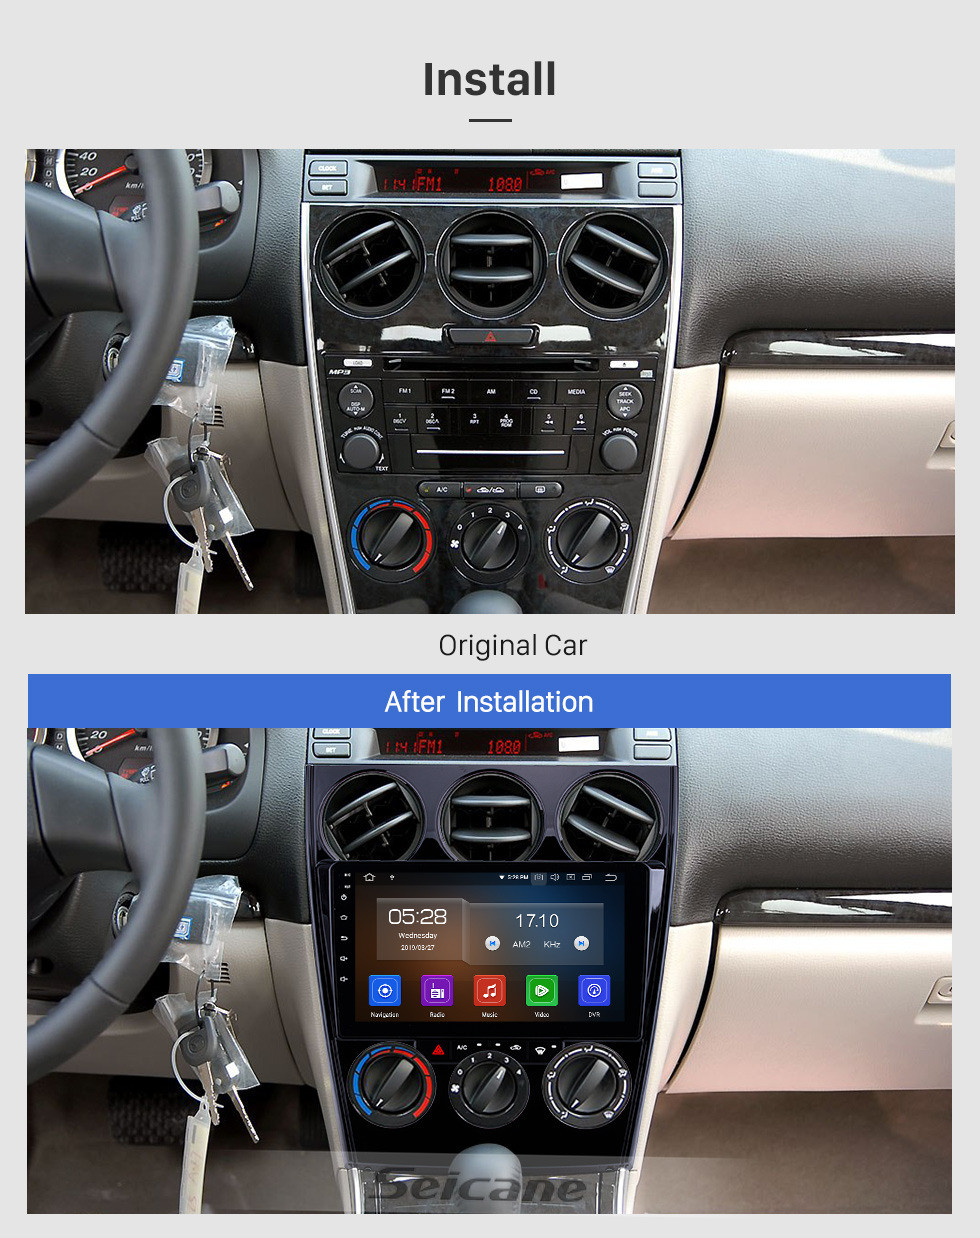 Seicane HD Touchscreen 9 inch Android 10.0 GPS Navigation Radio for 2002-2008 Old Mazda 6 with WIFI Carplay Bluetooth USB support RDS OBD2 DVR 4G Rearview Camera